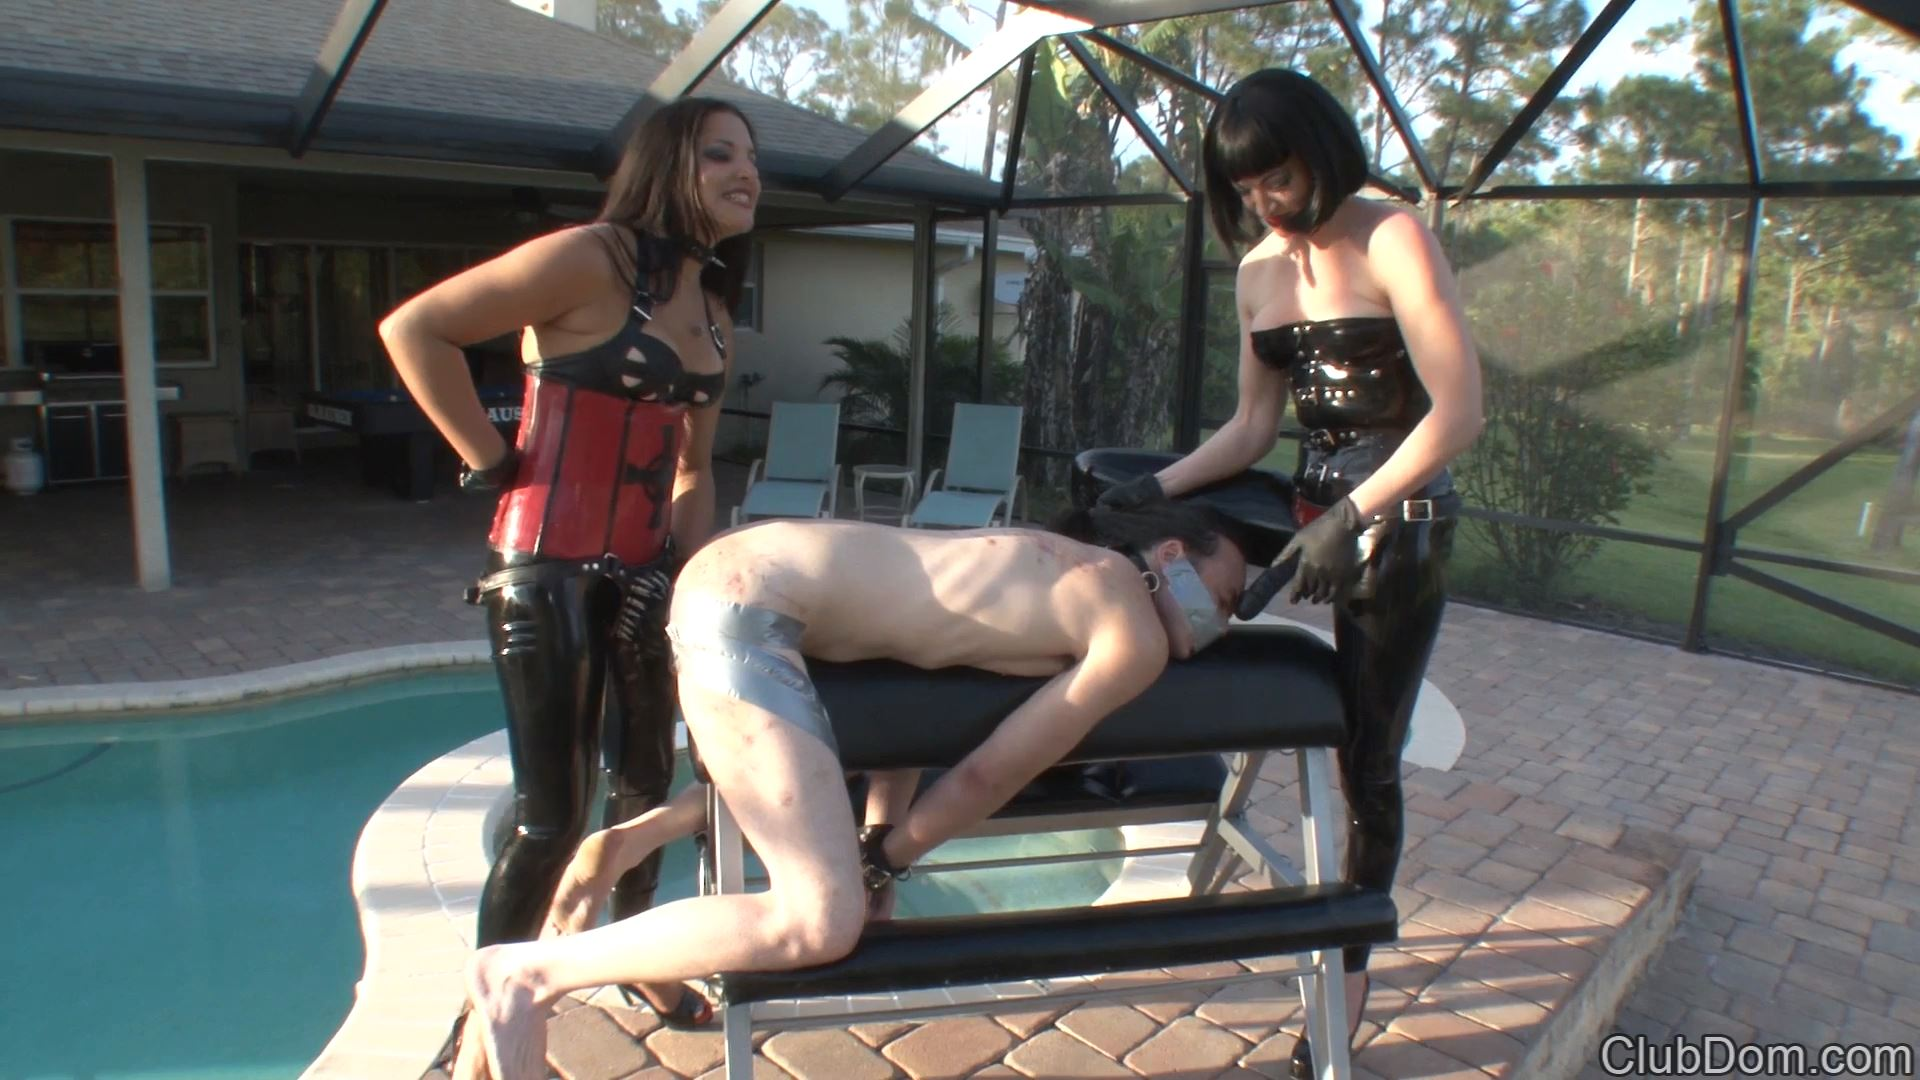 Jean Bardot, Michelle Lacy In Scene: Jean Bardot Duct Taped and Fucked - CLUBDOM / RUTHLESSVIXEN - FULL HD/1080p/MP4